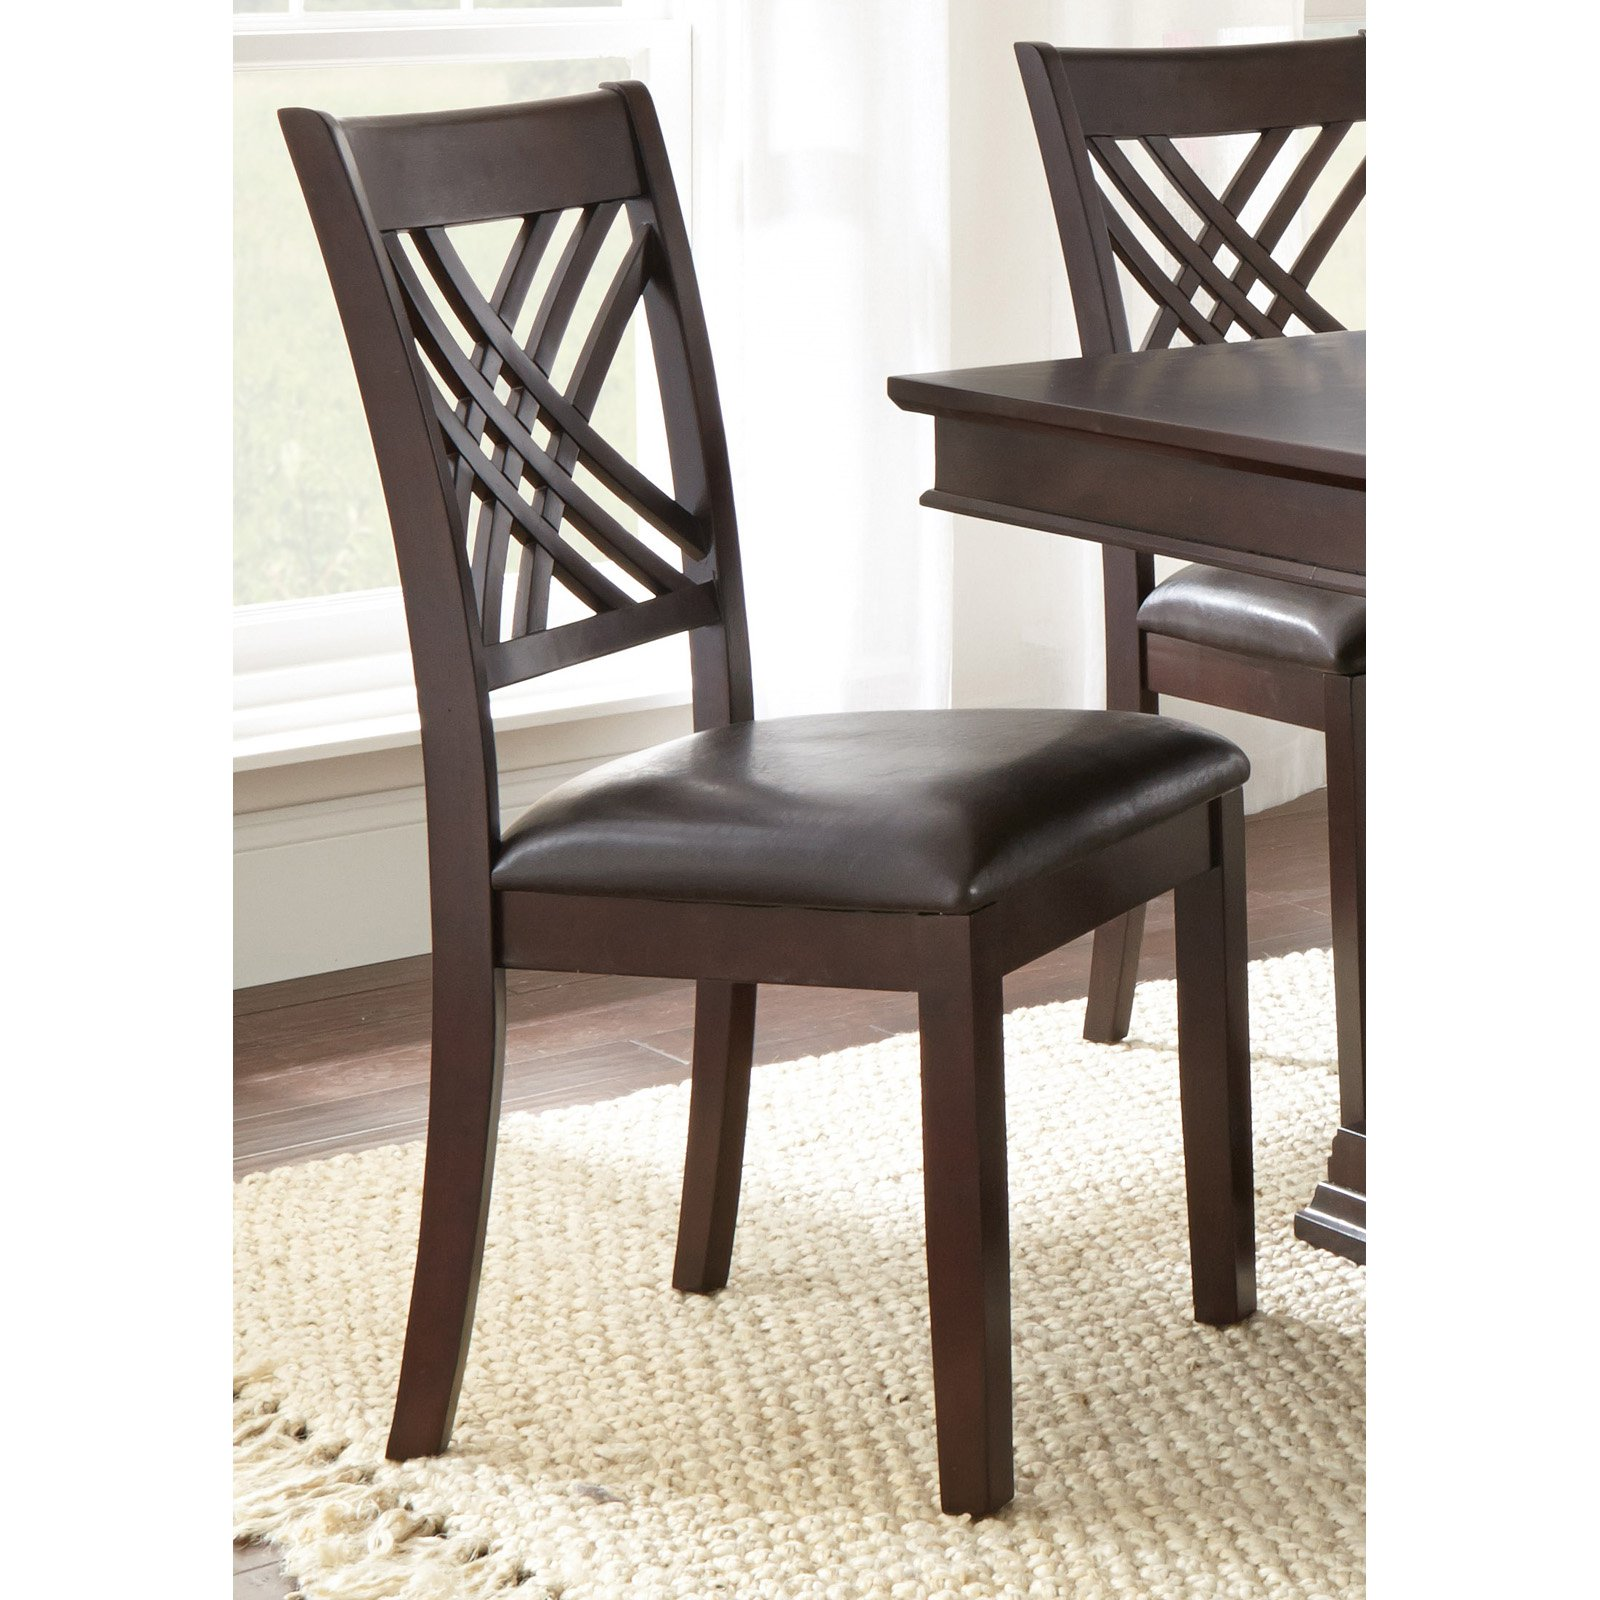 Steve Silver Adrian Side Chair Set of 2 by Steve Silver Co